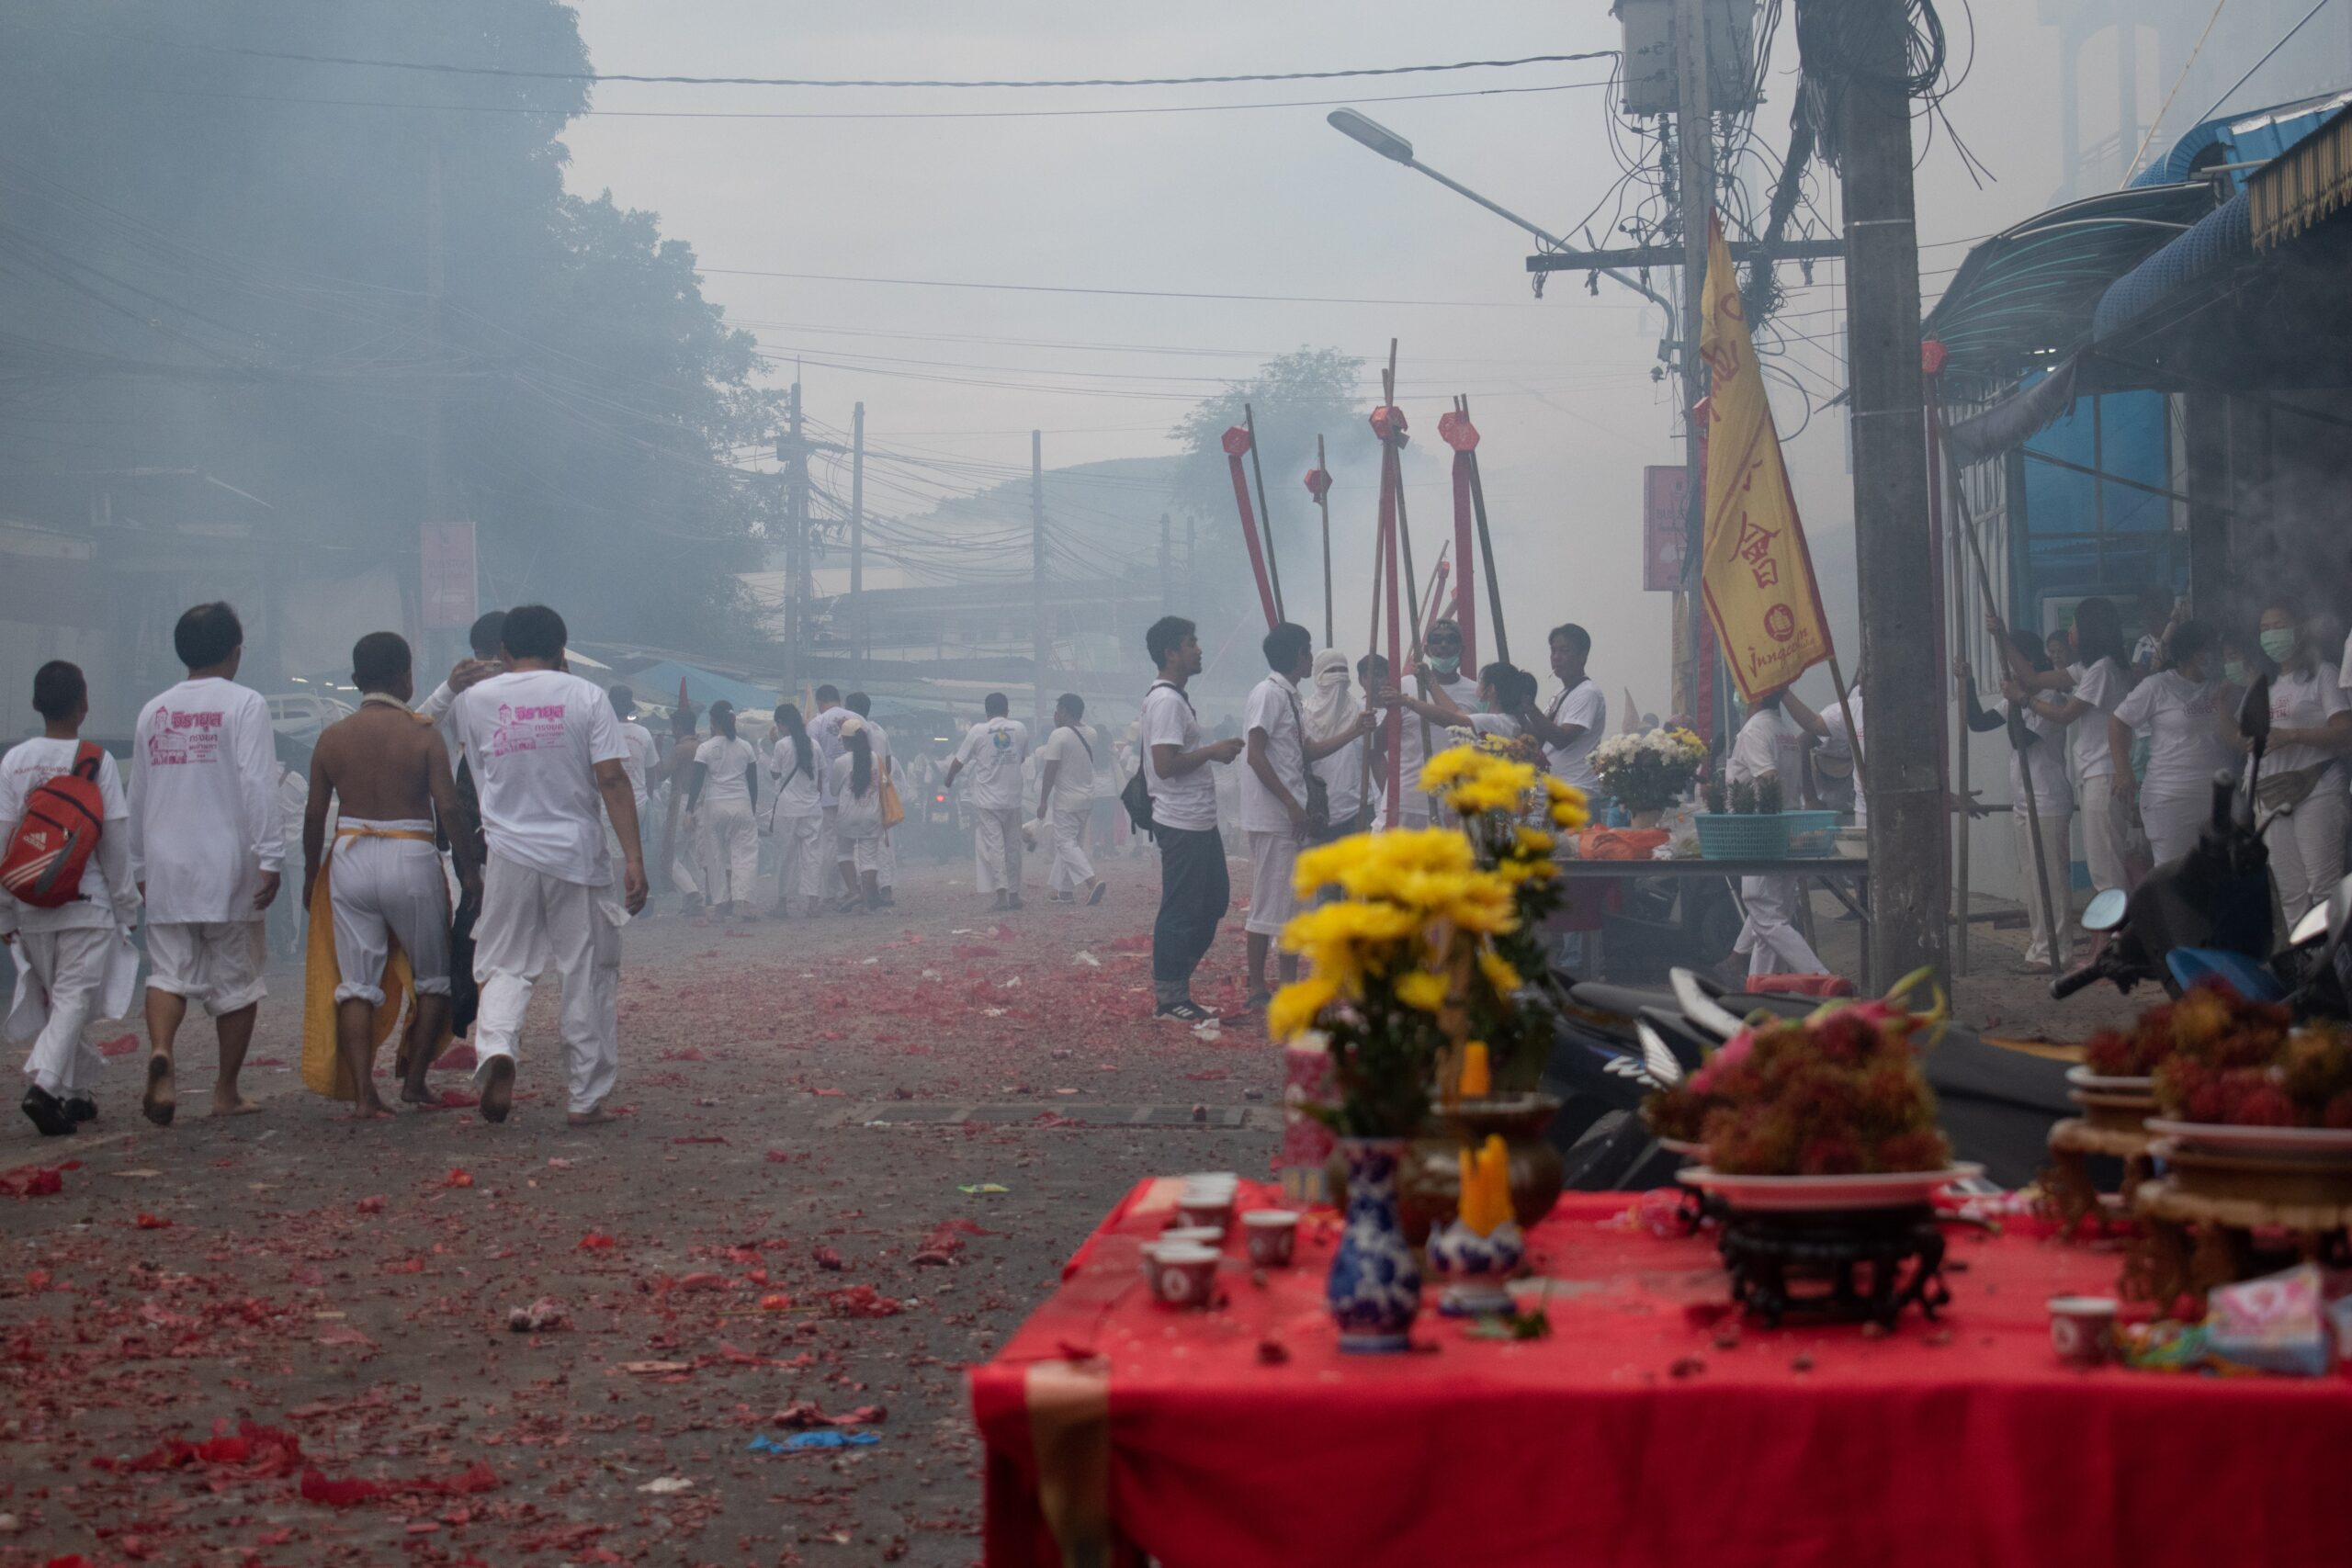 India's Green Tribunal Orders Ban On Firecrackers In Capital, Nearby Areas